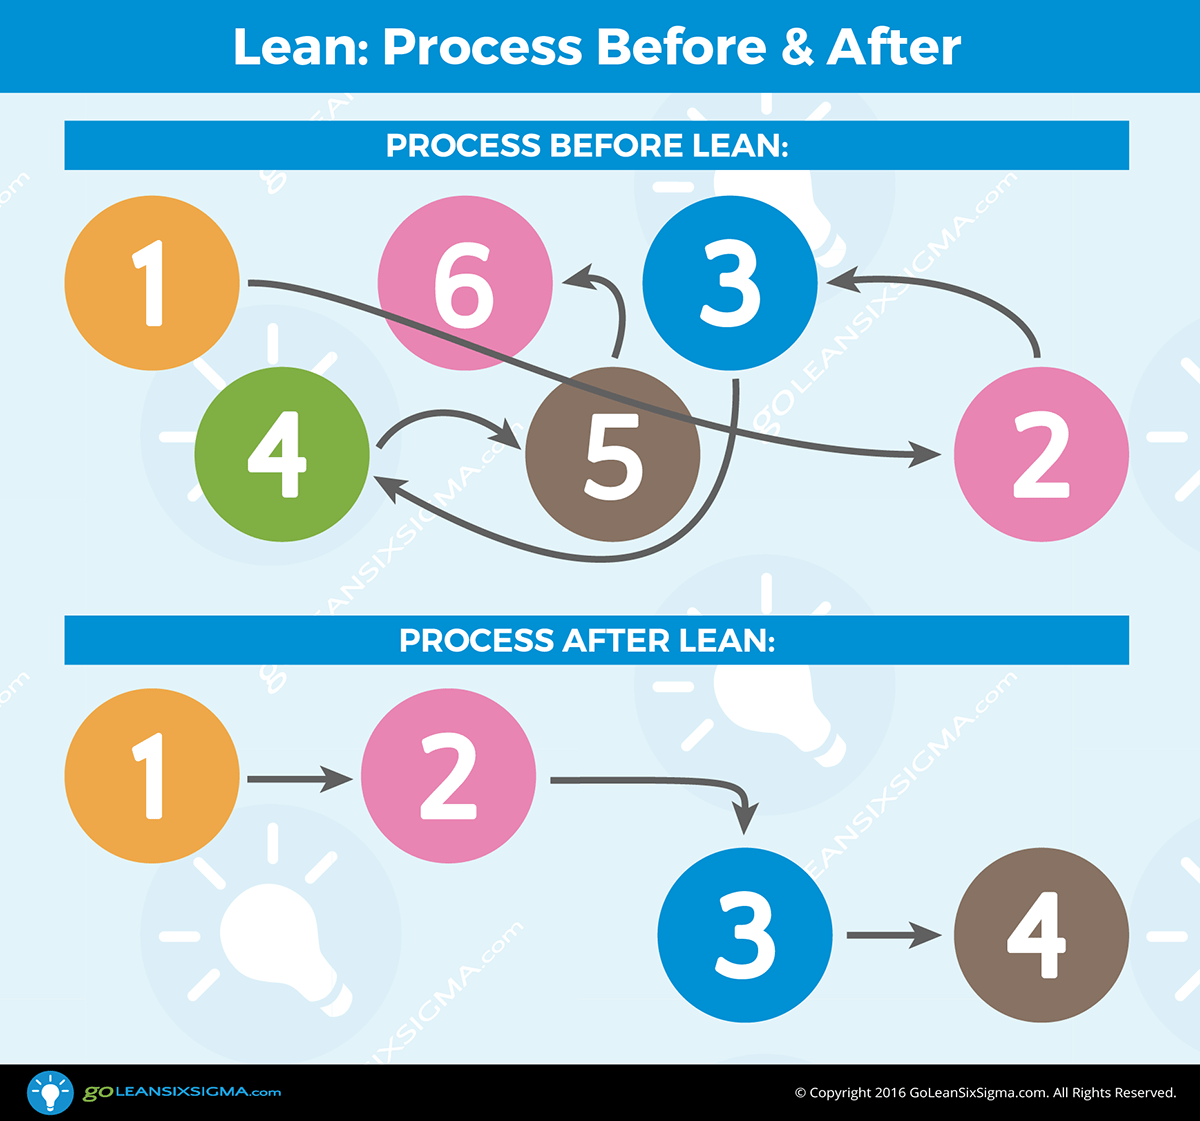 Lean: Process Before & After -- GoLeanSixSigma.com